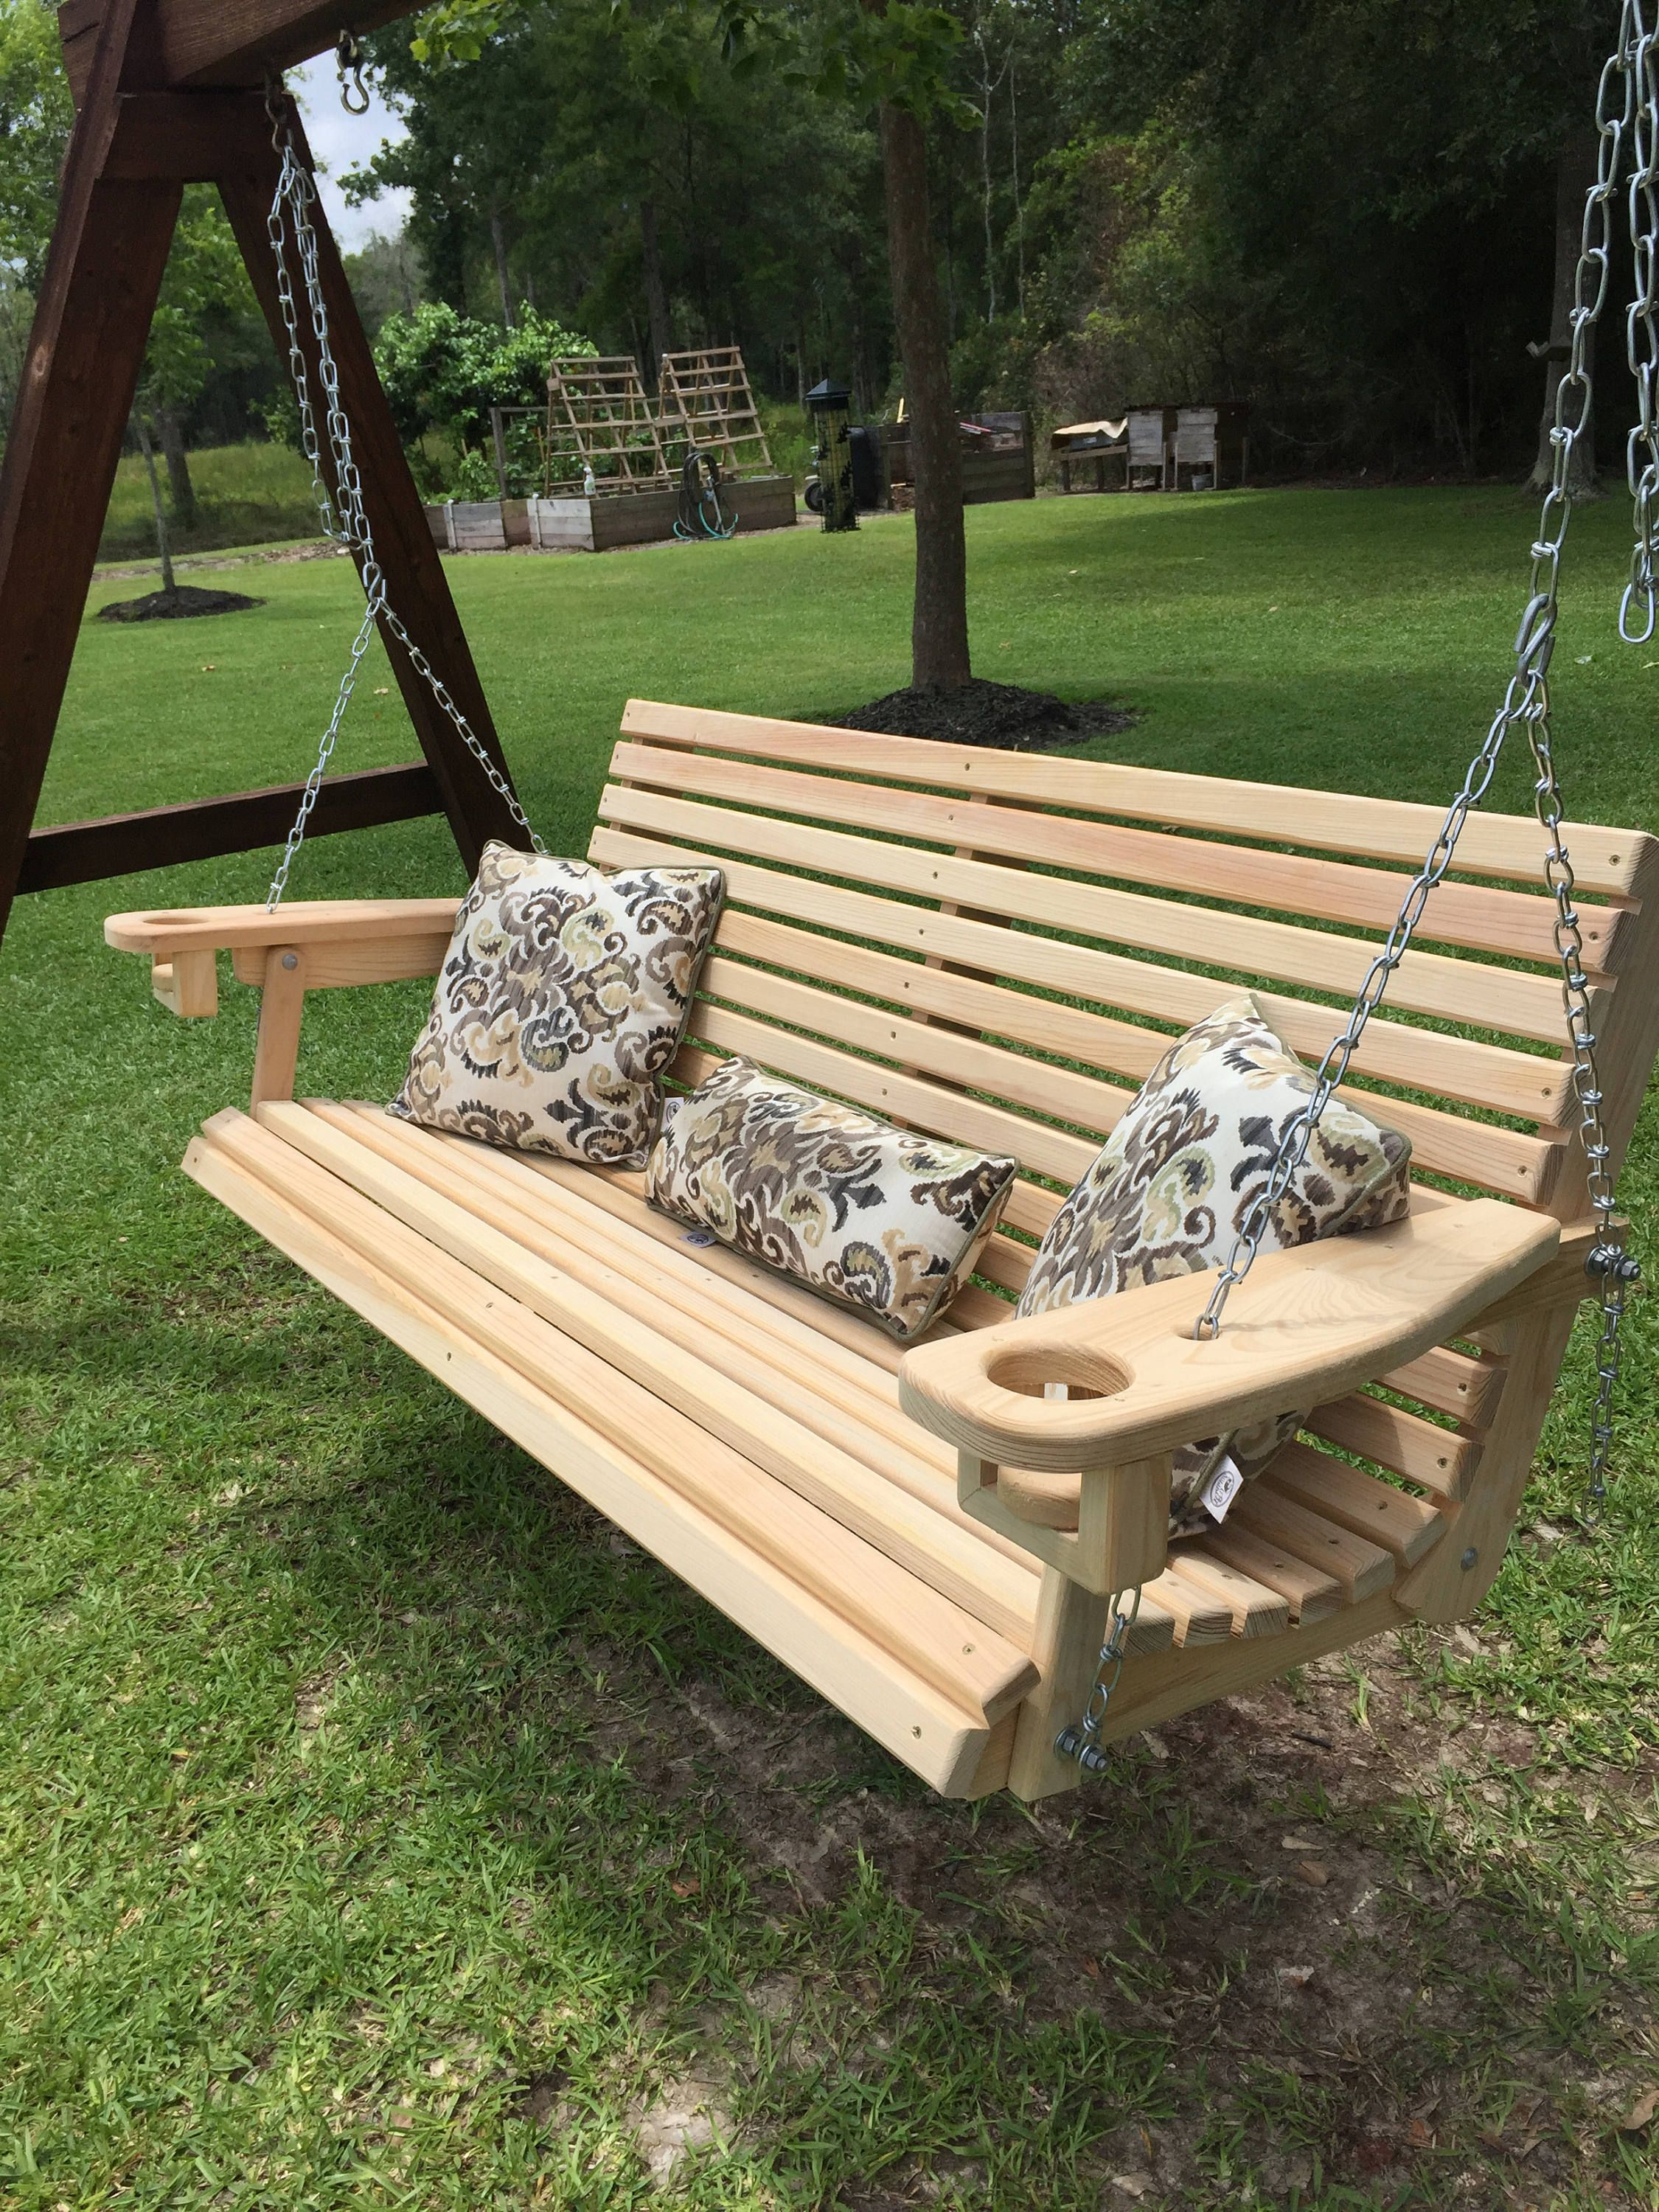 5 Ft Handmade Cypress Porch Swing With Cupholders Custom Etsy Porch Swing Diy Porch Swing Porch Swing Plans